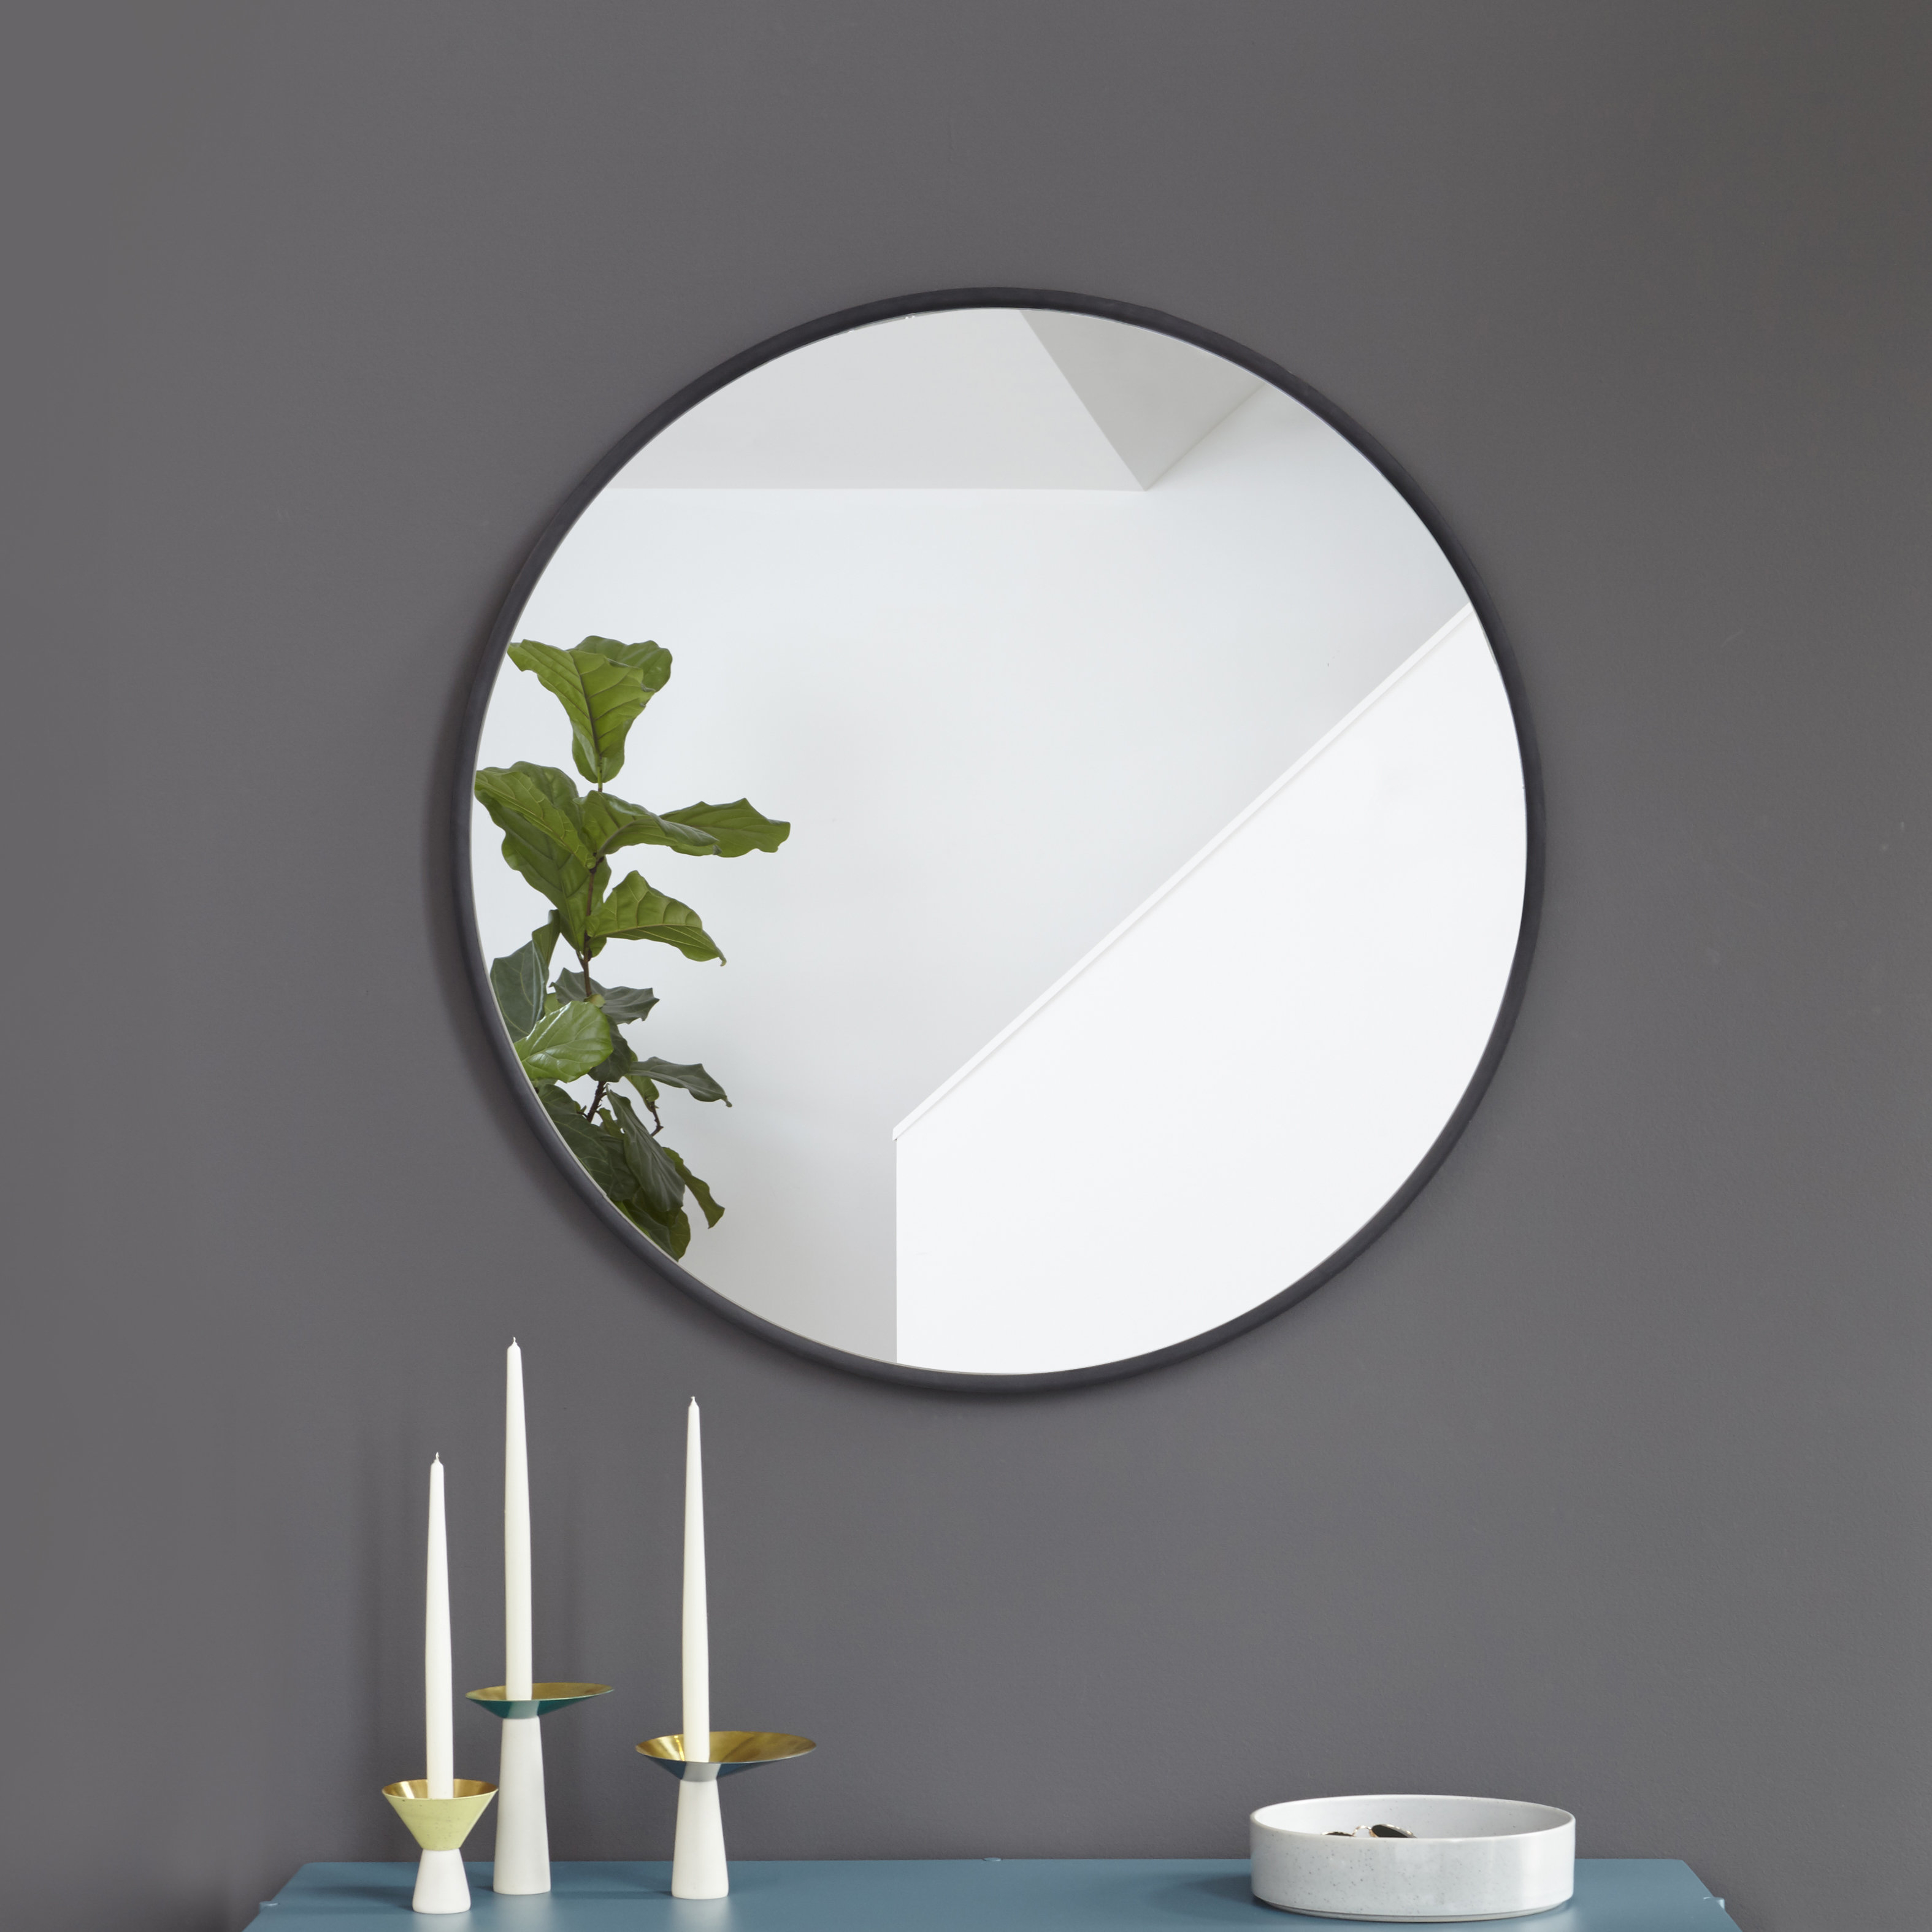 Hub Modern And Contemporary Accent Mirror regarding Hub Modern And Contemporary Accent Mirrors (Image 12 of 30)